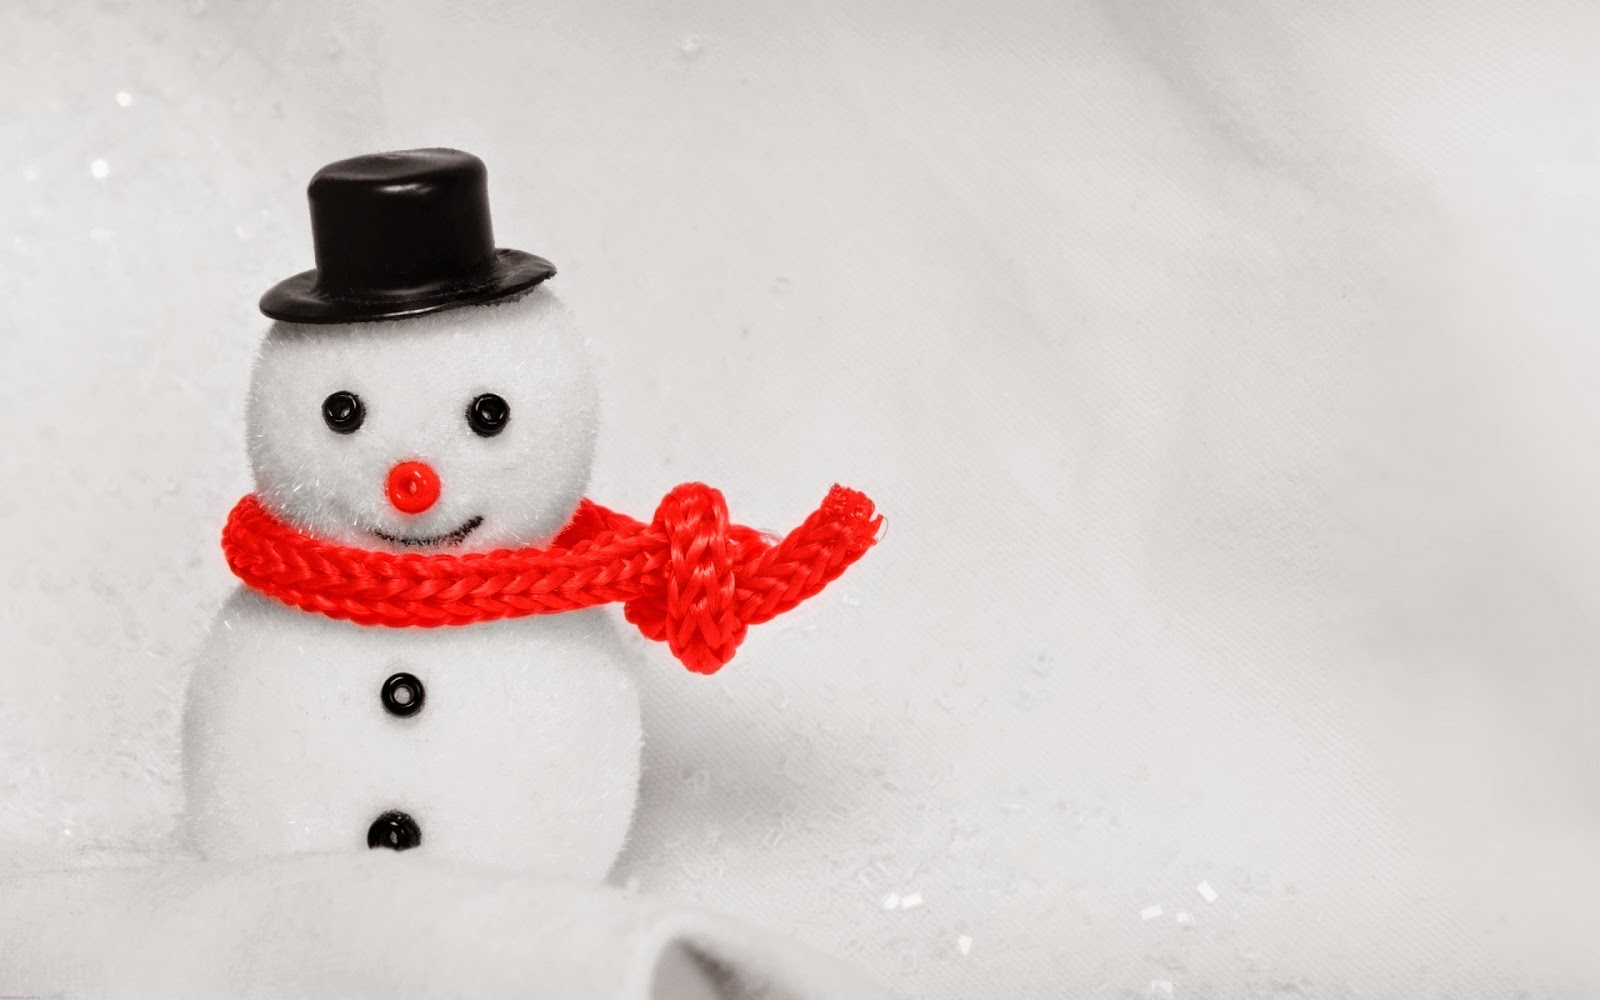 snowman-images-for-kids-children-HD-pictures-wallpapers.jpg